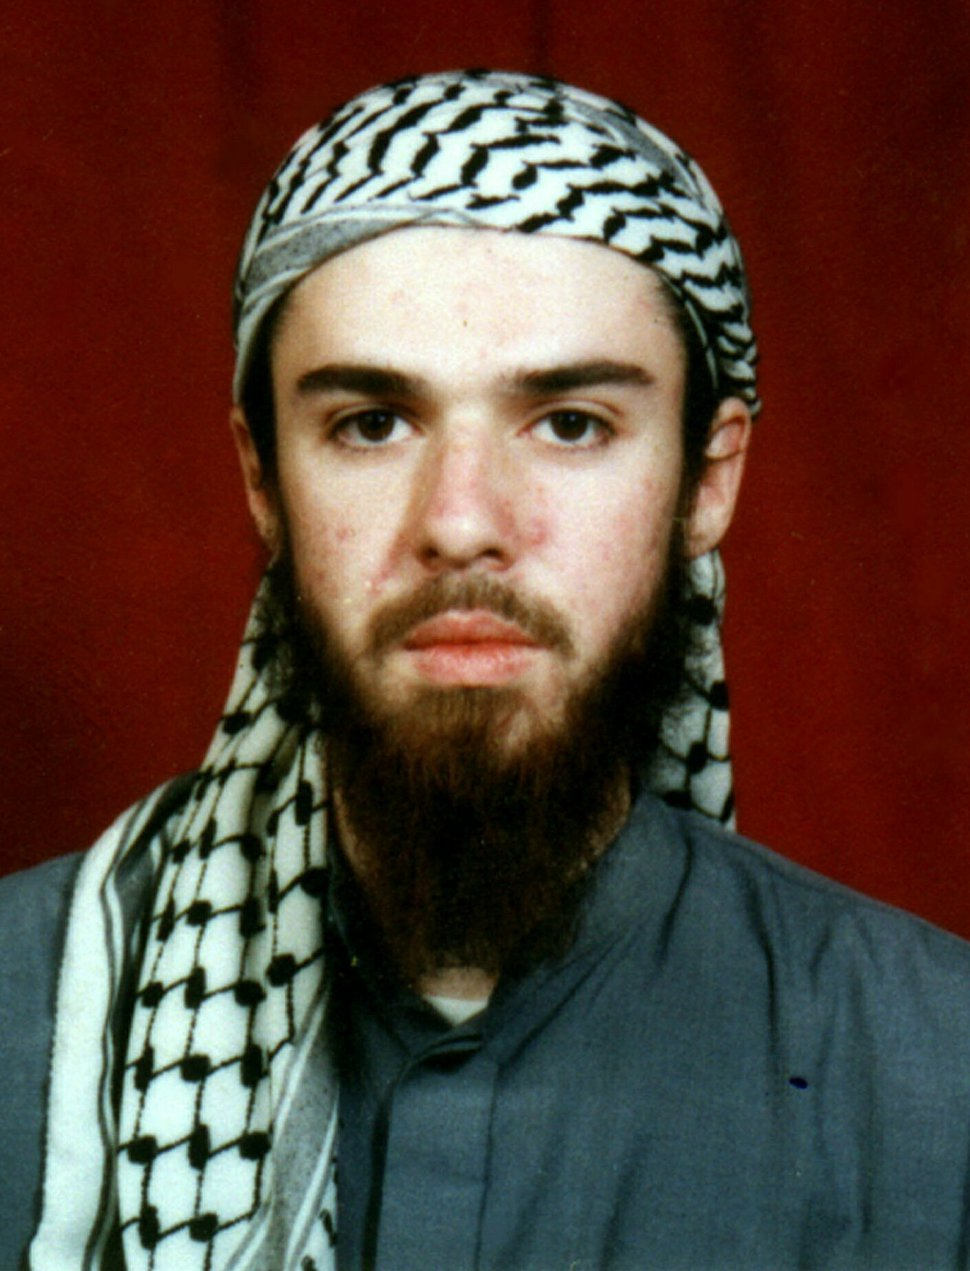 (AP file photo) American John Walker Lindh is seen in this undated file photo obtained Tuesday, Jan. 22, 2002, from a religious school where he studied for five months in Bannu, 190 miles southwest of Islamabad, Pakistan. Lindh, the young Californian who became known as the American Taliban after he was captured by U.S. forces in the invasion of Afghanistan in late 2001, was set free Thursday, May 23, 2019, after nearly two decades in prison.